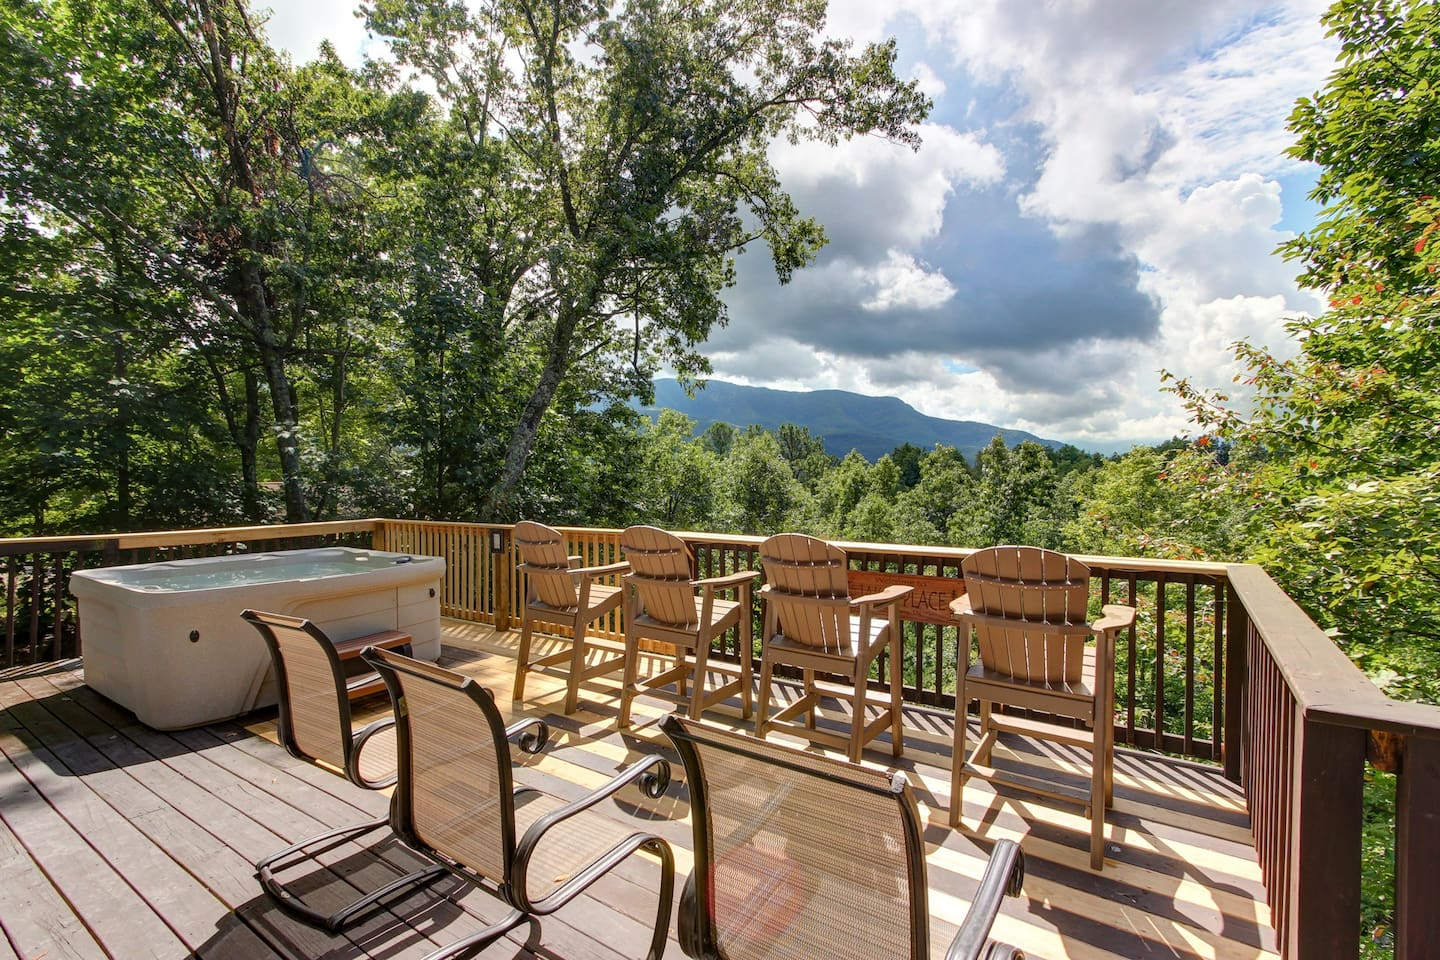 Spacious Deck with Hot Tub Overlooking Incredible Mountain View